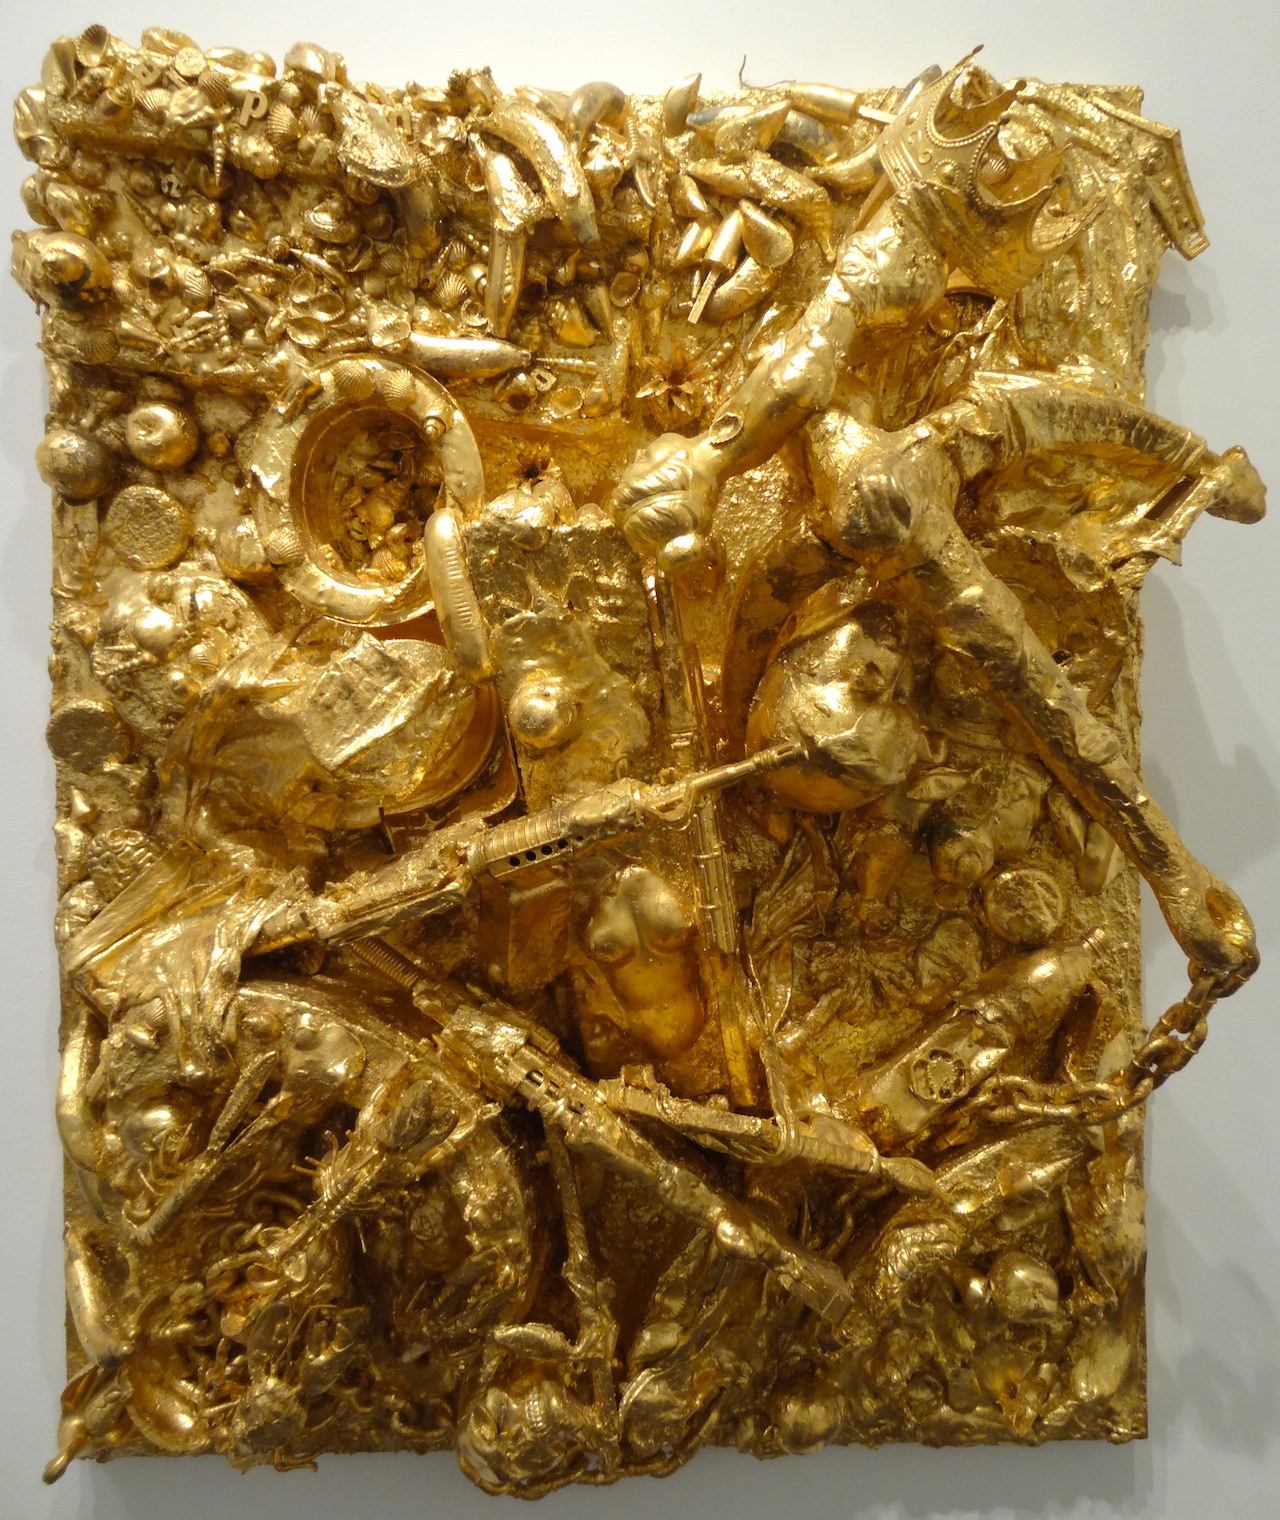 """John Miller, """"The Young and the Restless"""" (2008) in 'GOLD' at the Bass Museum of Art"""